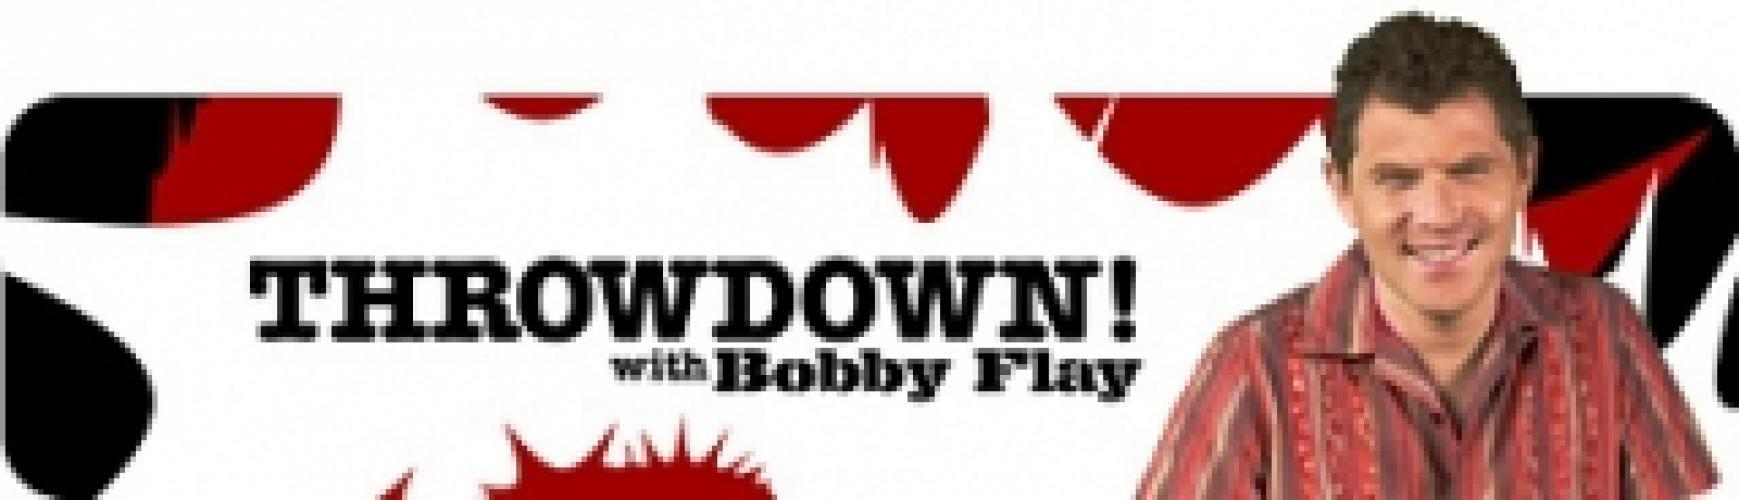 Throwdown with Bobby Flay next episode air date poster